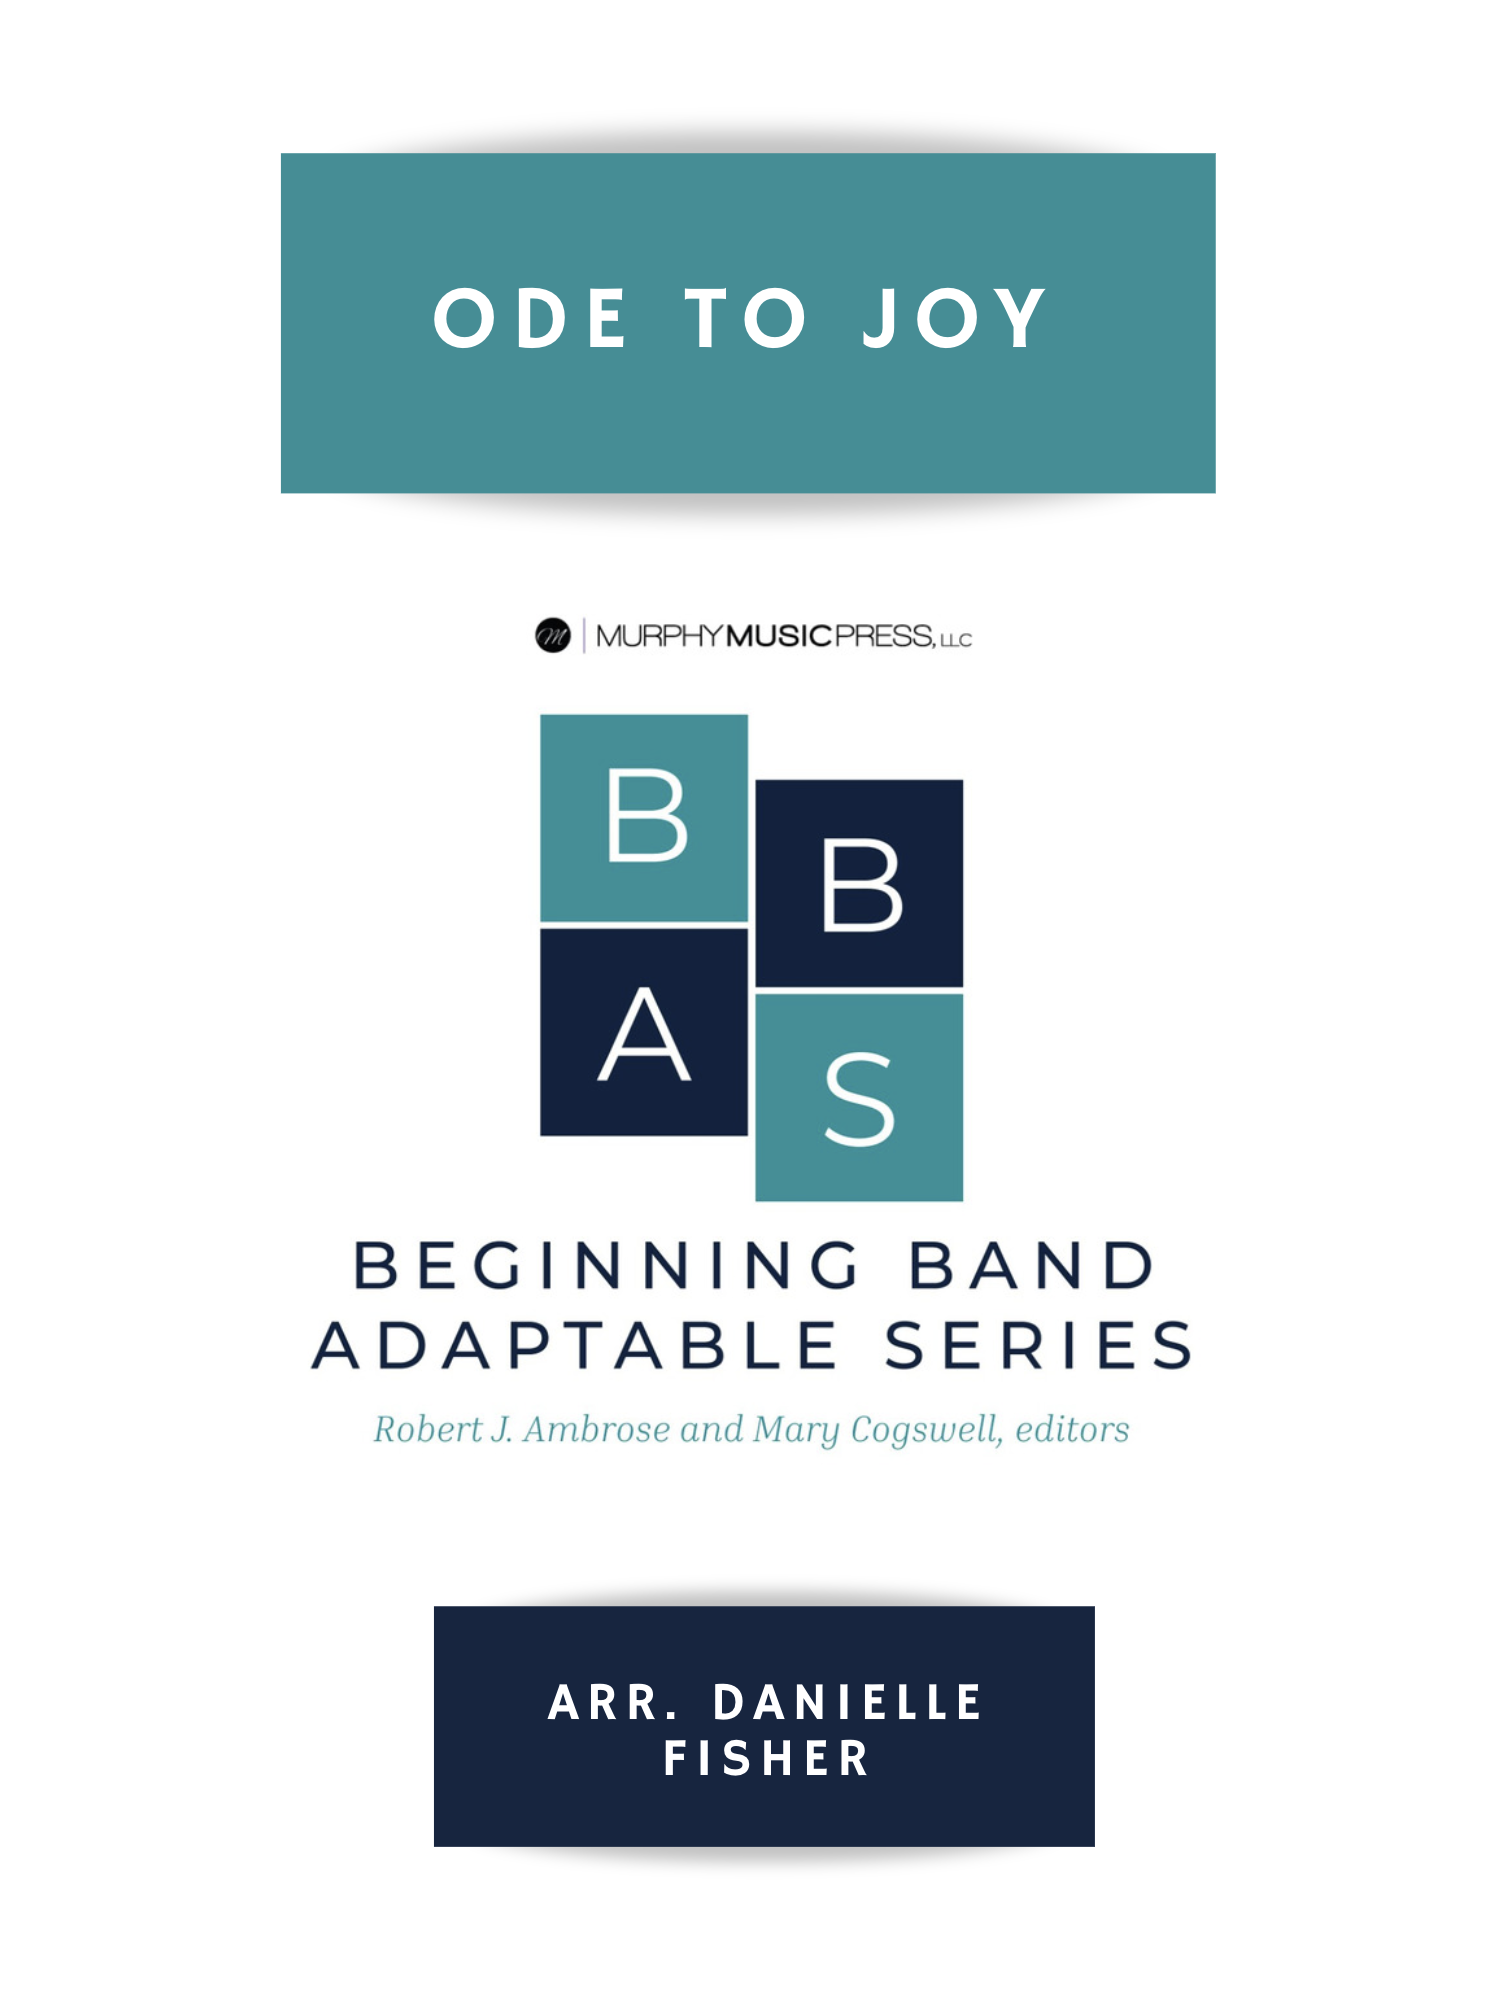 Ode To Joy by arr. Danielle Fisher